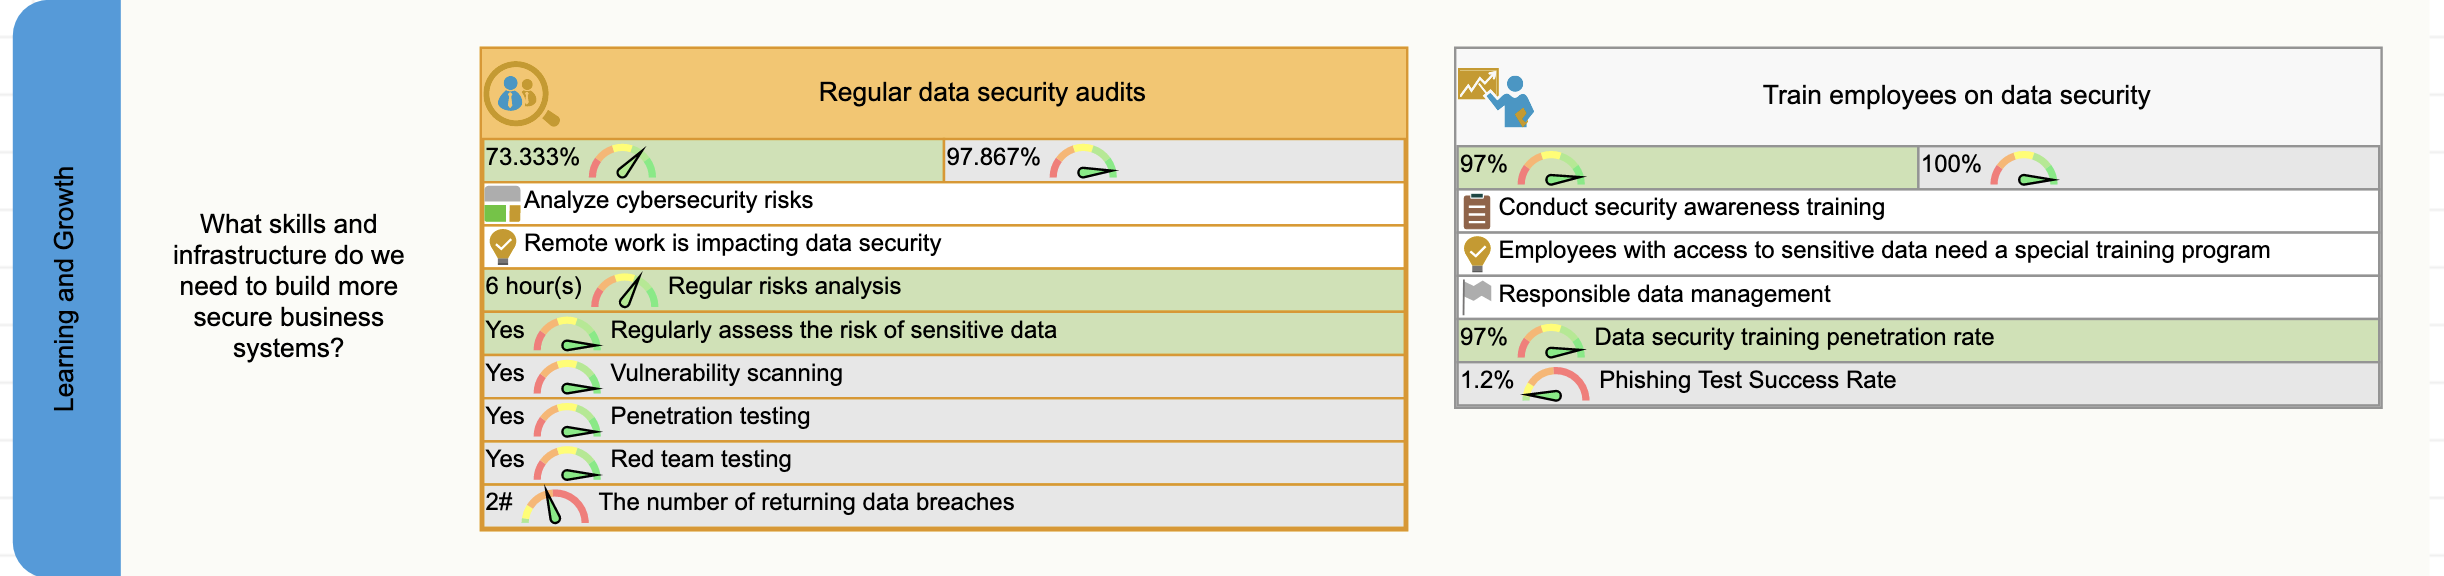 Learning perspective of the data security scorecard